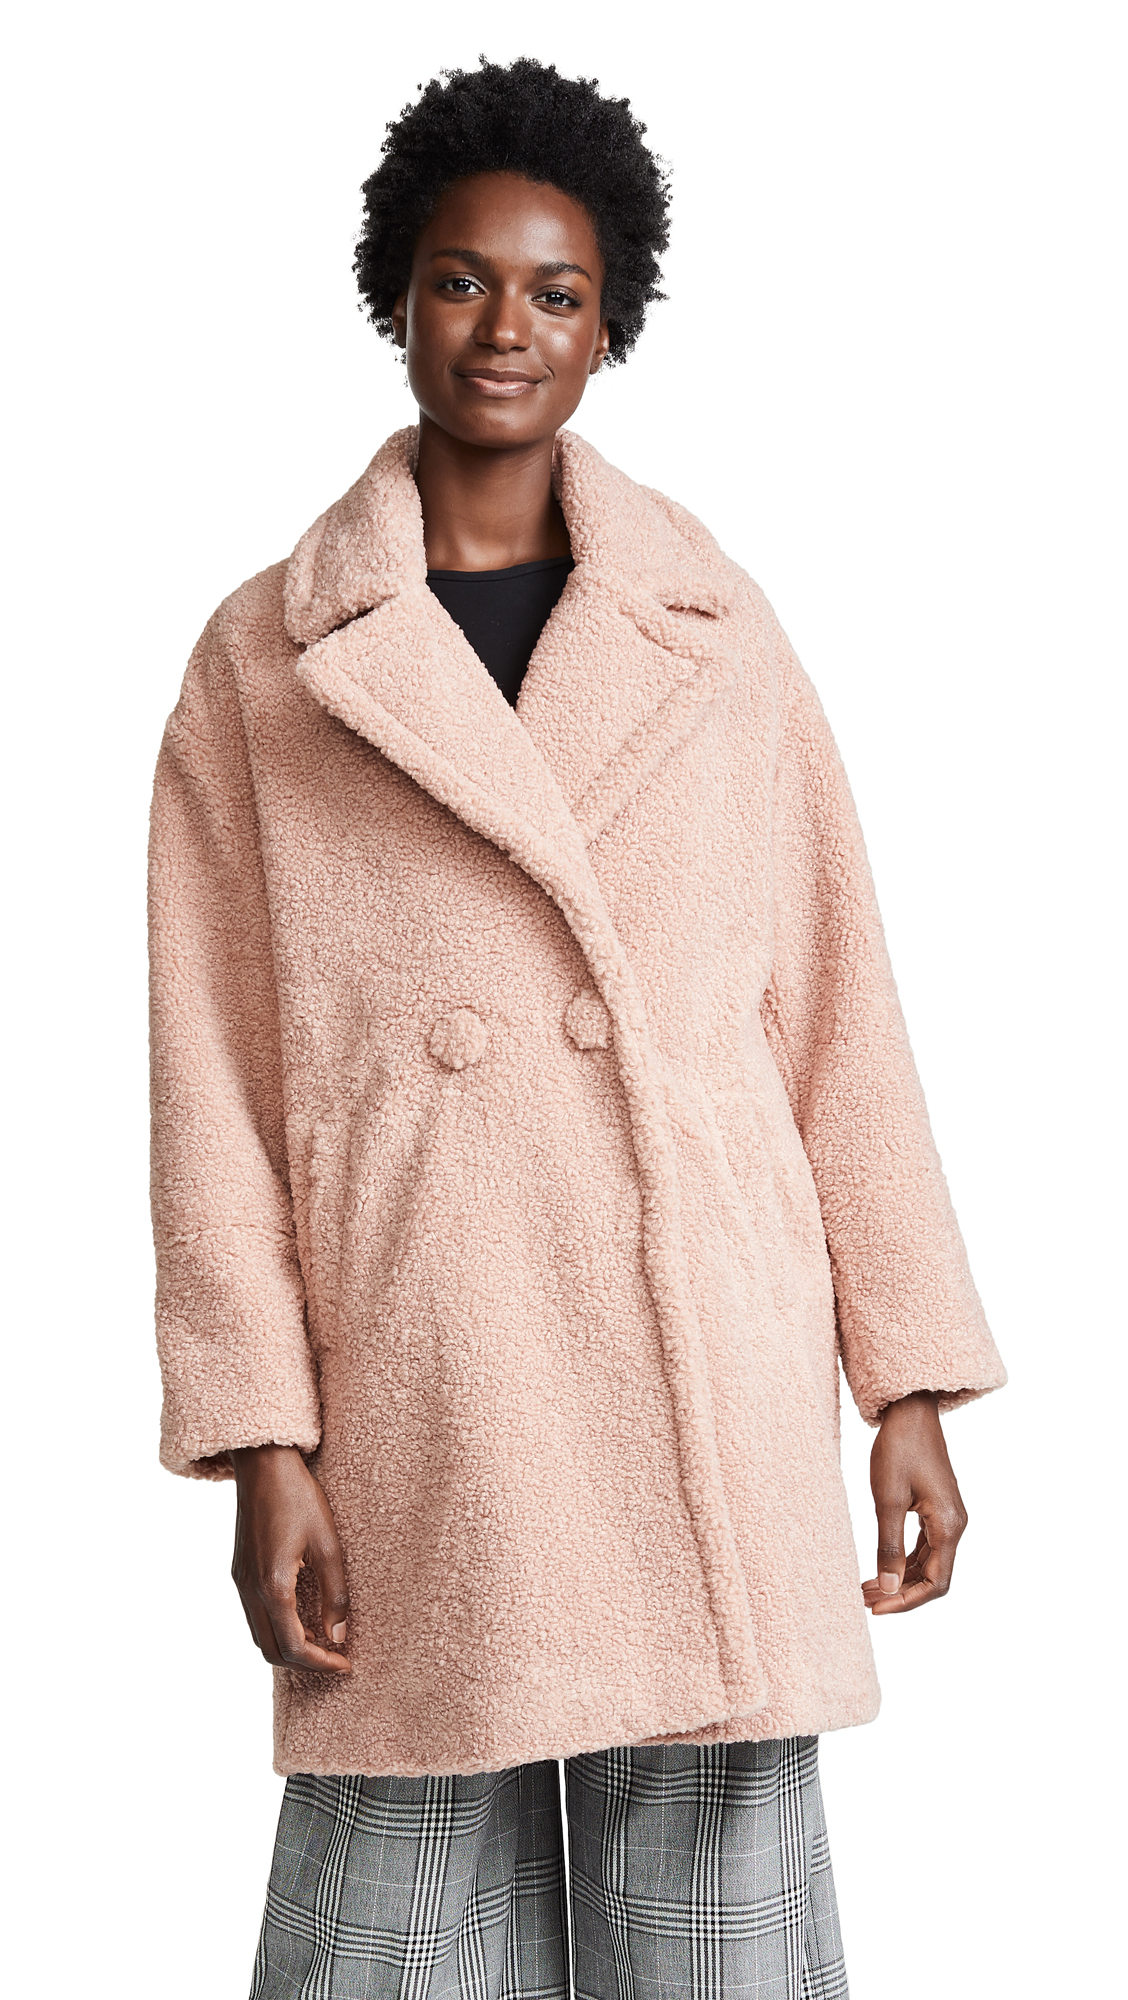 Paul & Joe Sister Minno Coat